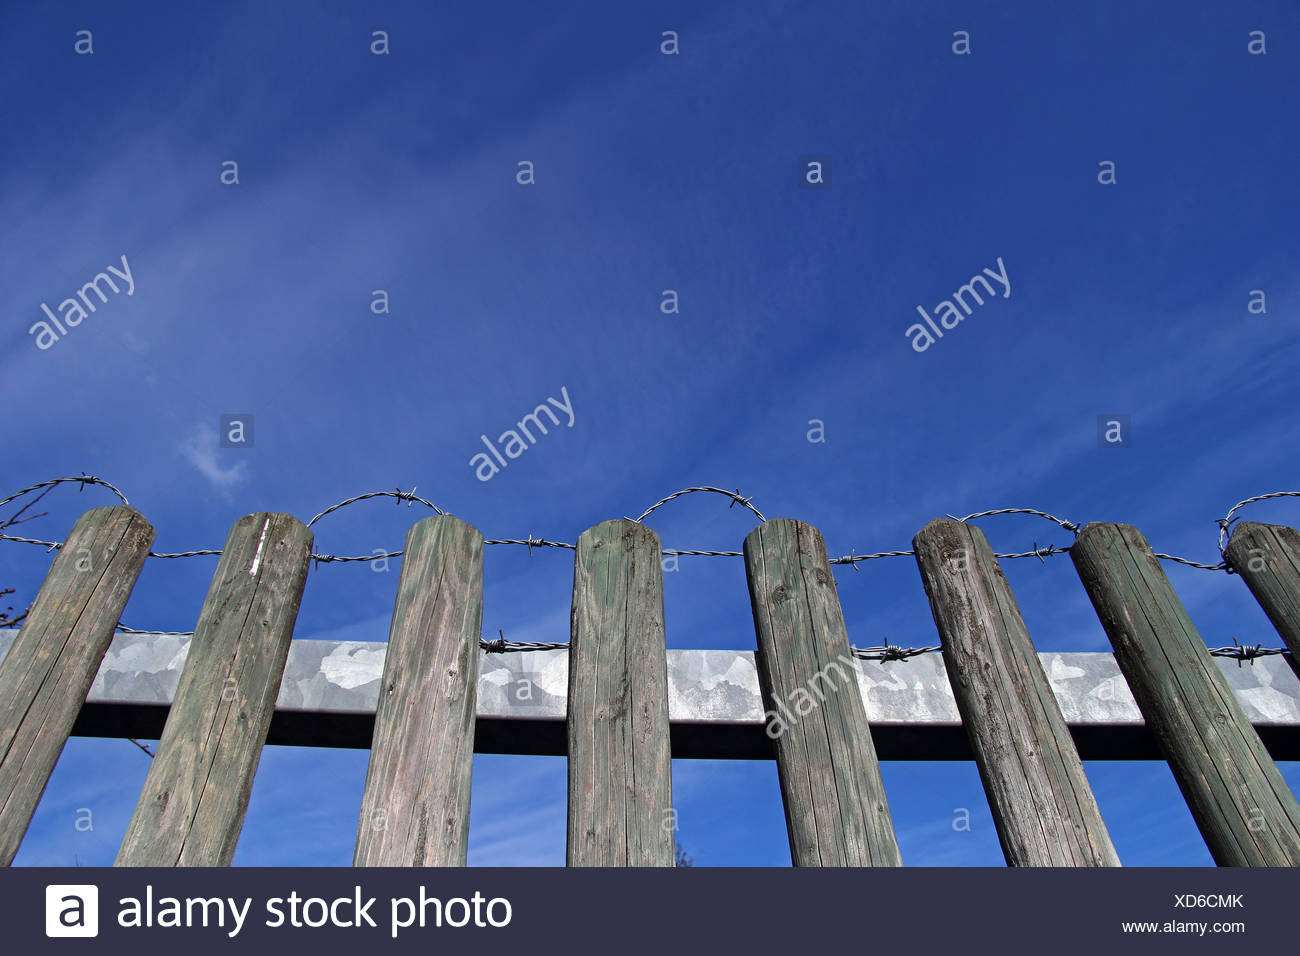 Wooden fence with barbed wire, against a blue sky - Stock Image